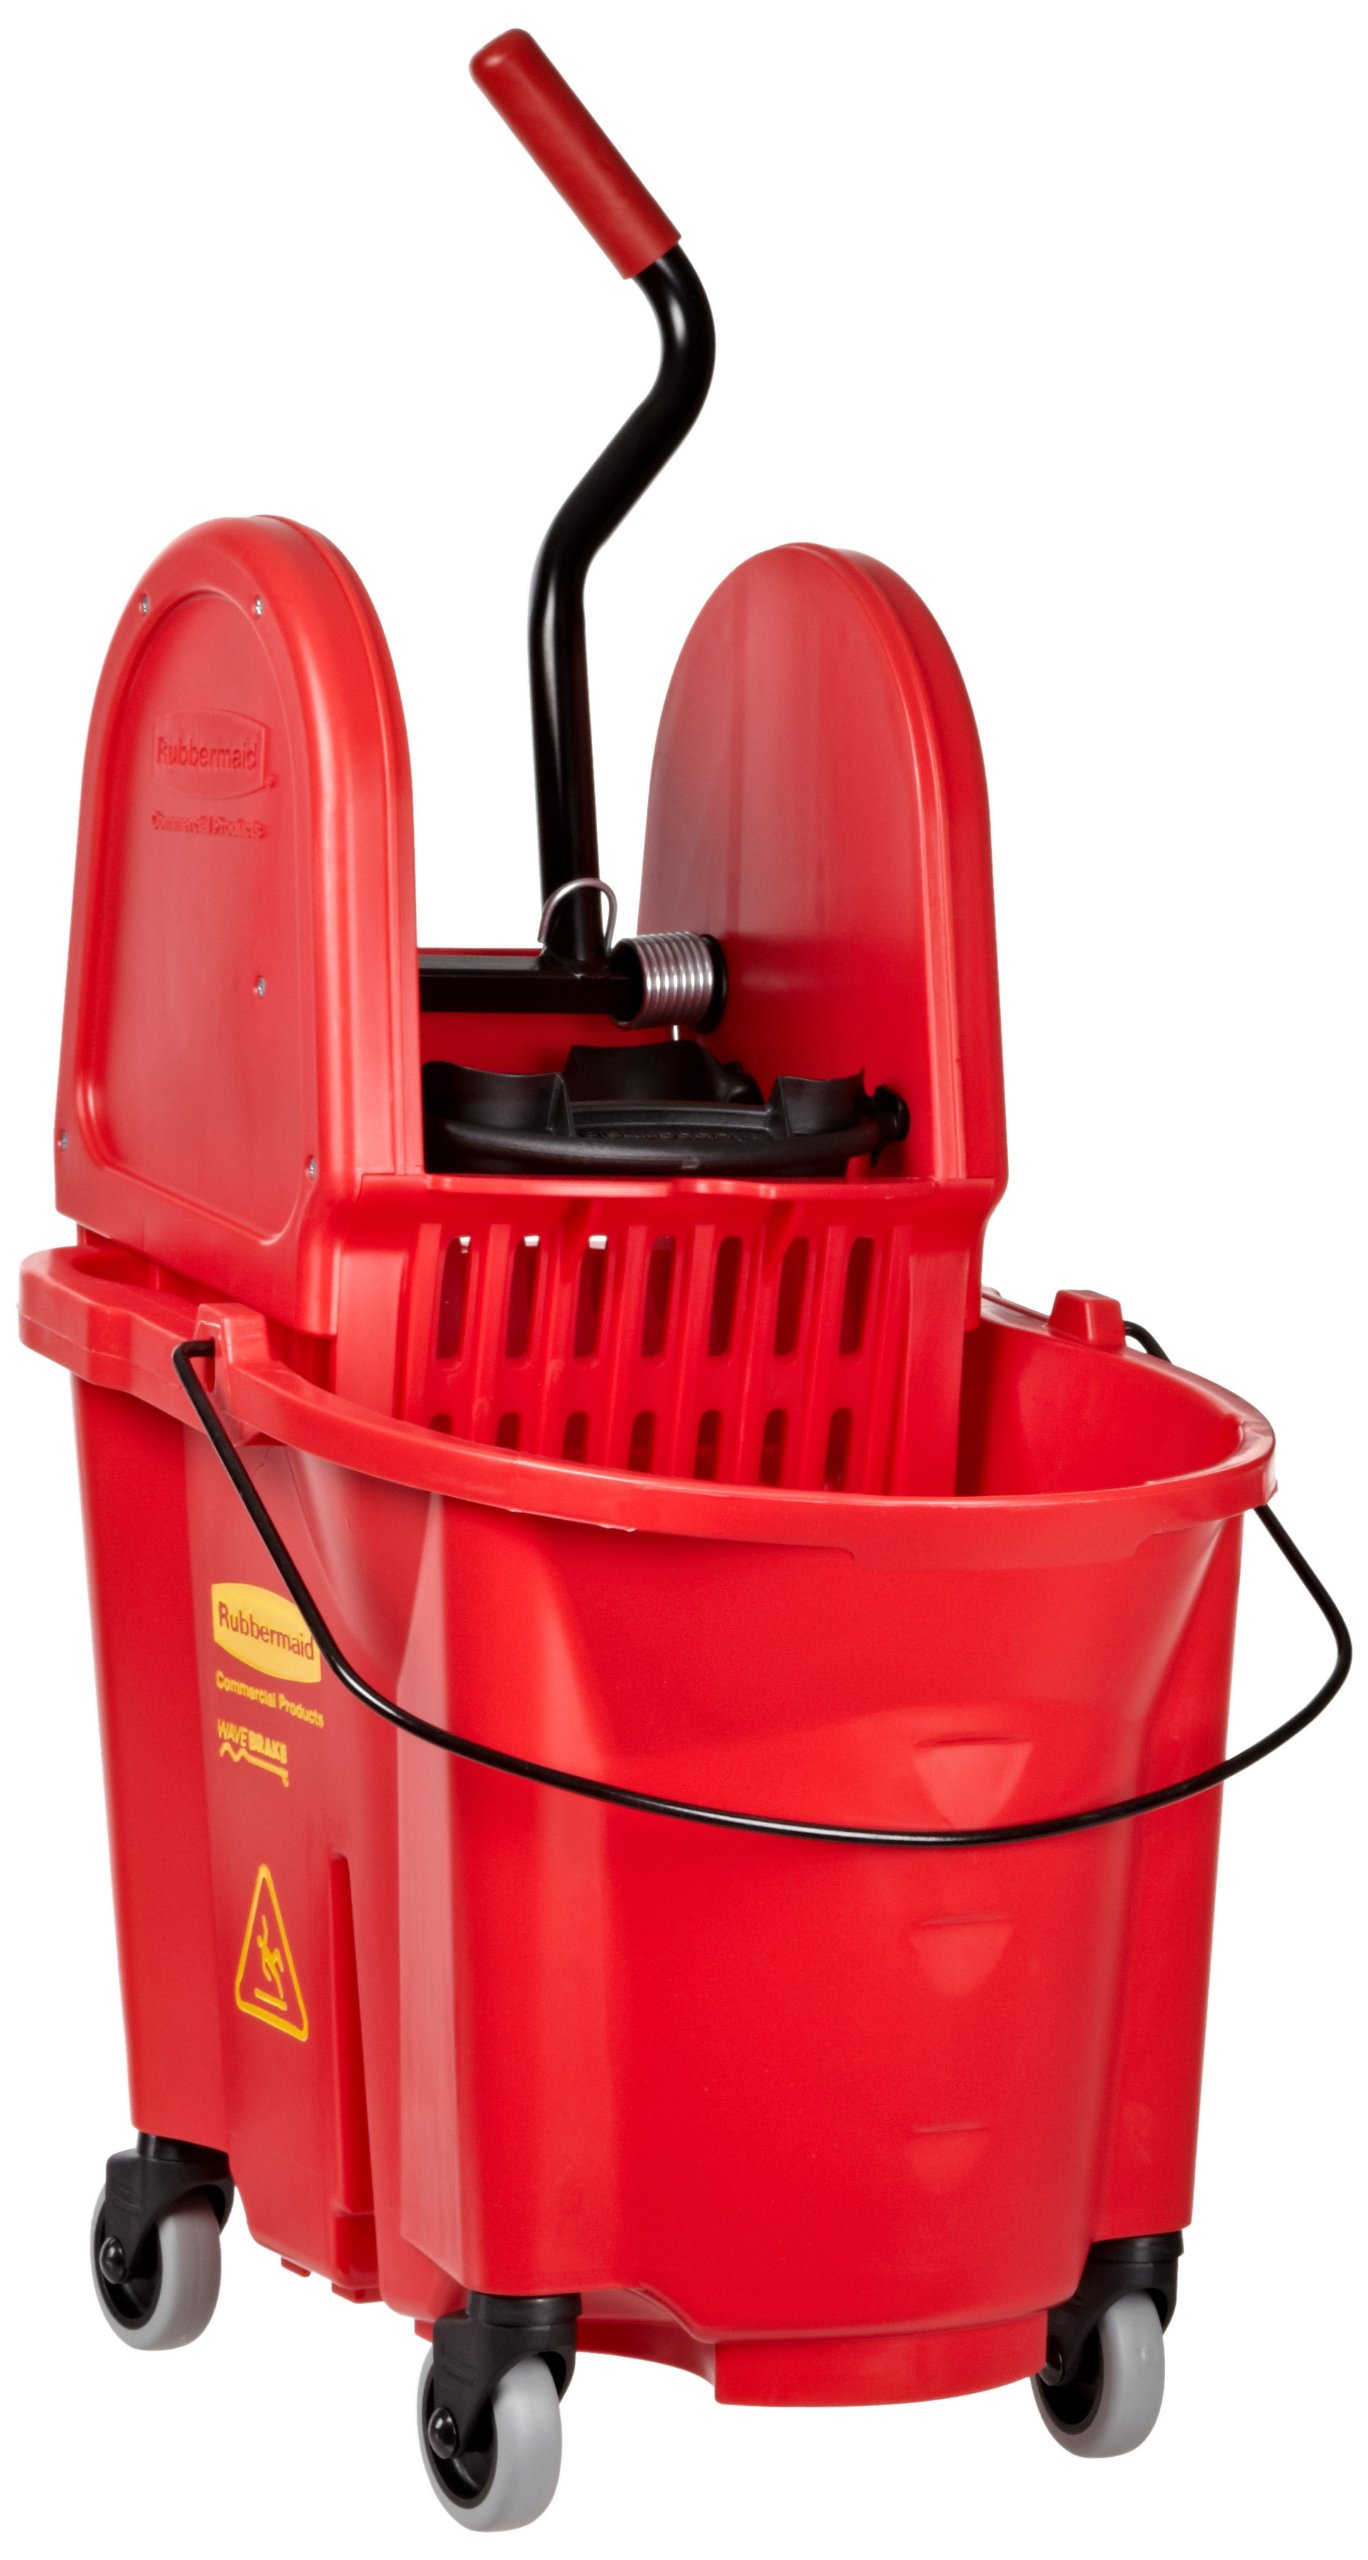 Rubbermaid Commercial WaveBrake Mop Bucket with Down-Press Wringer Combo, 35 Quart, Red, FG757888RED